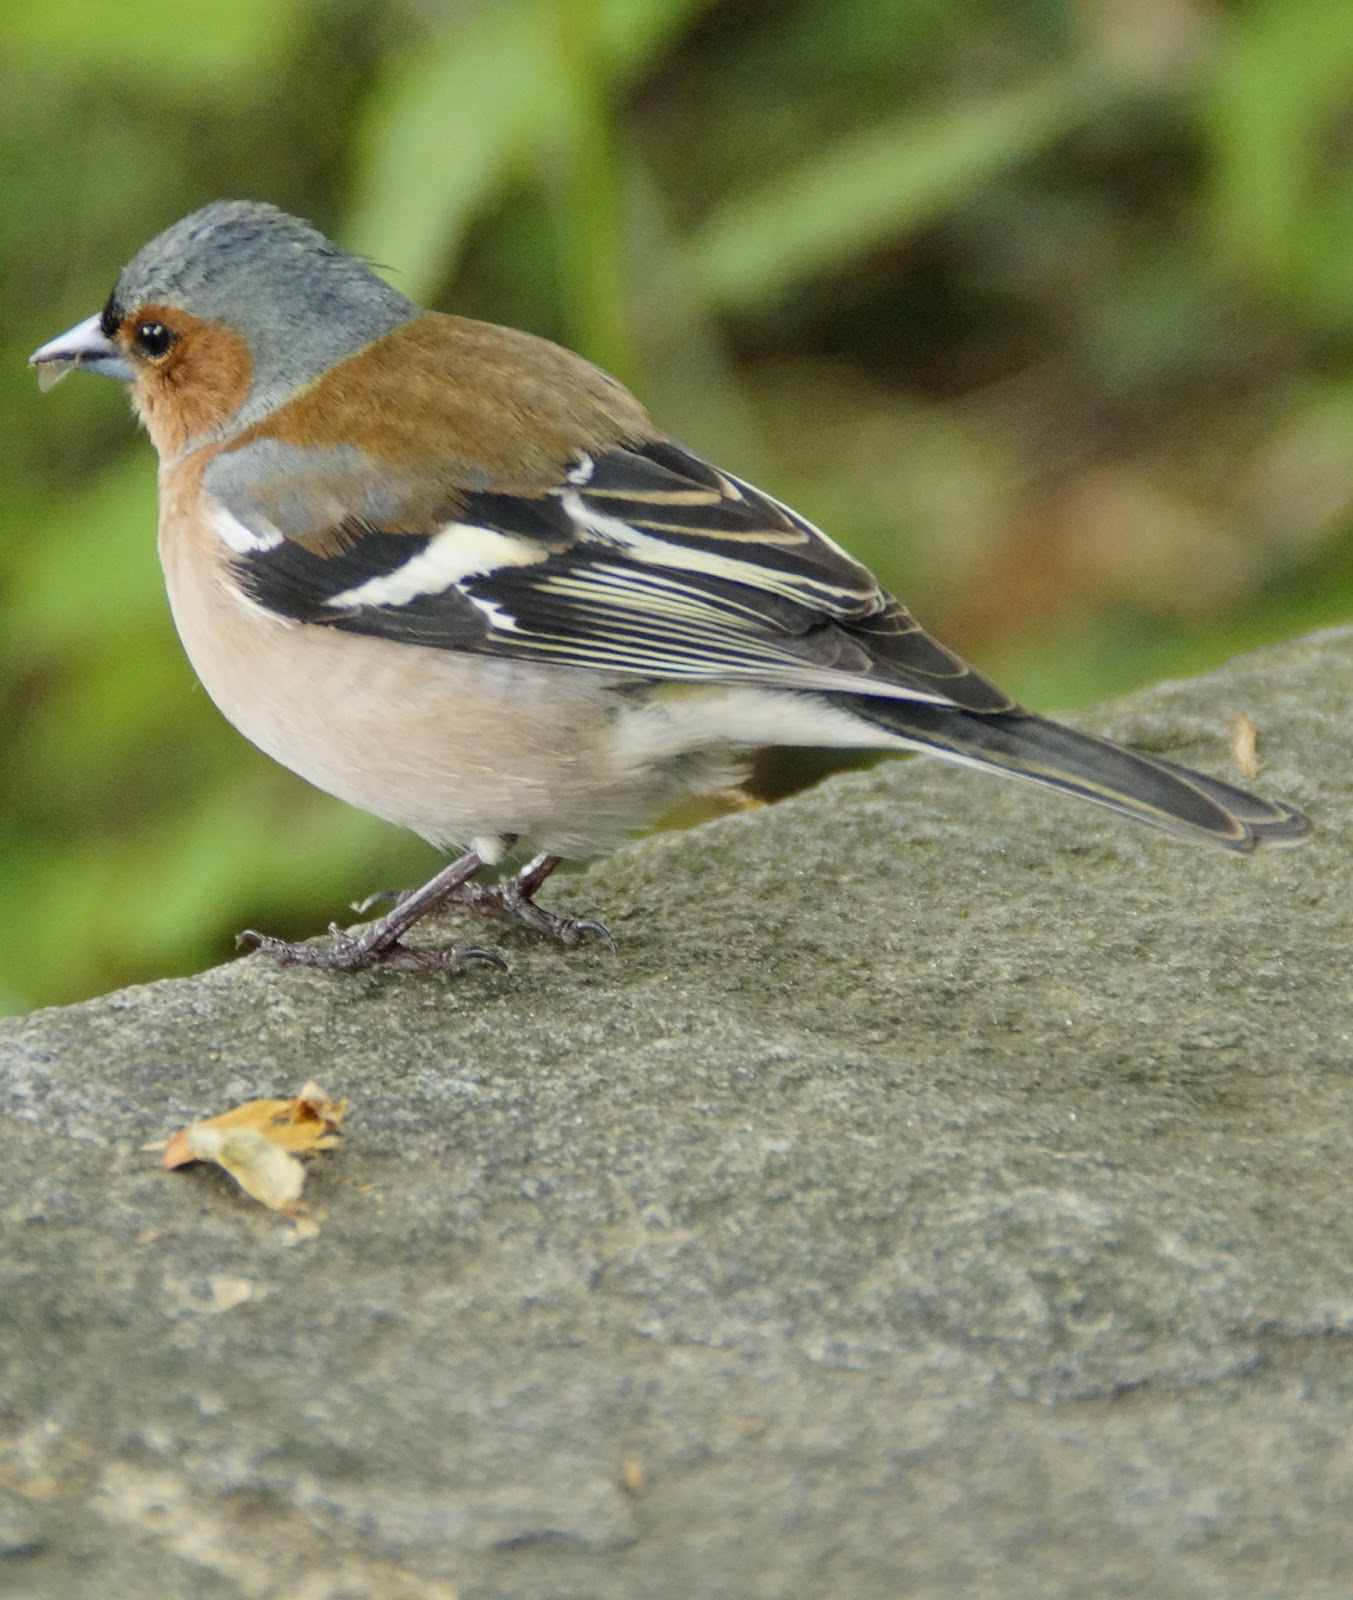 Picture of a chaffinch bird.